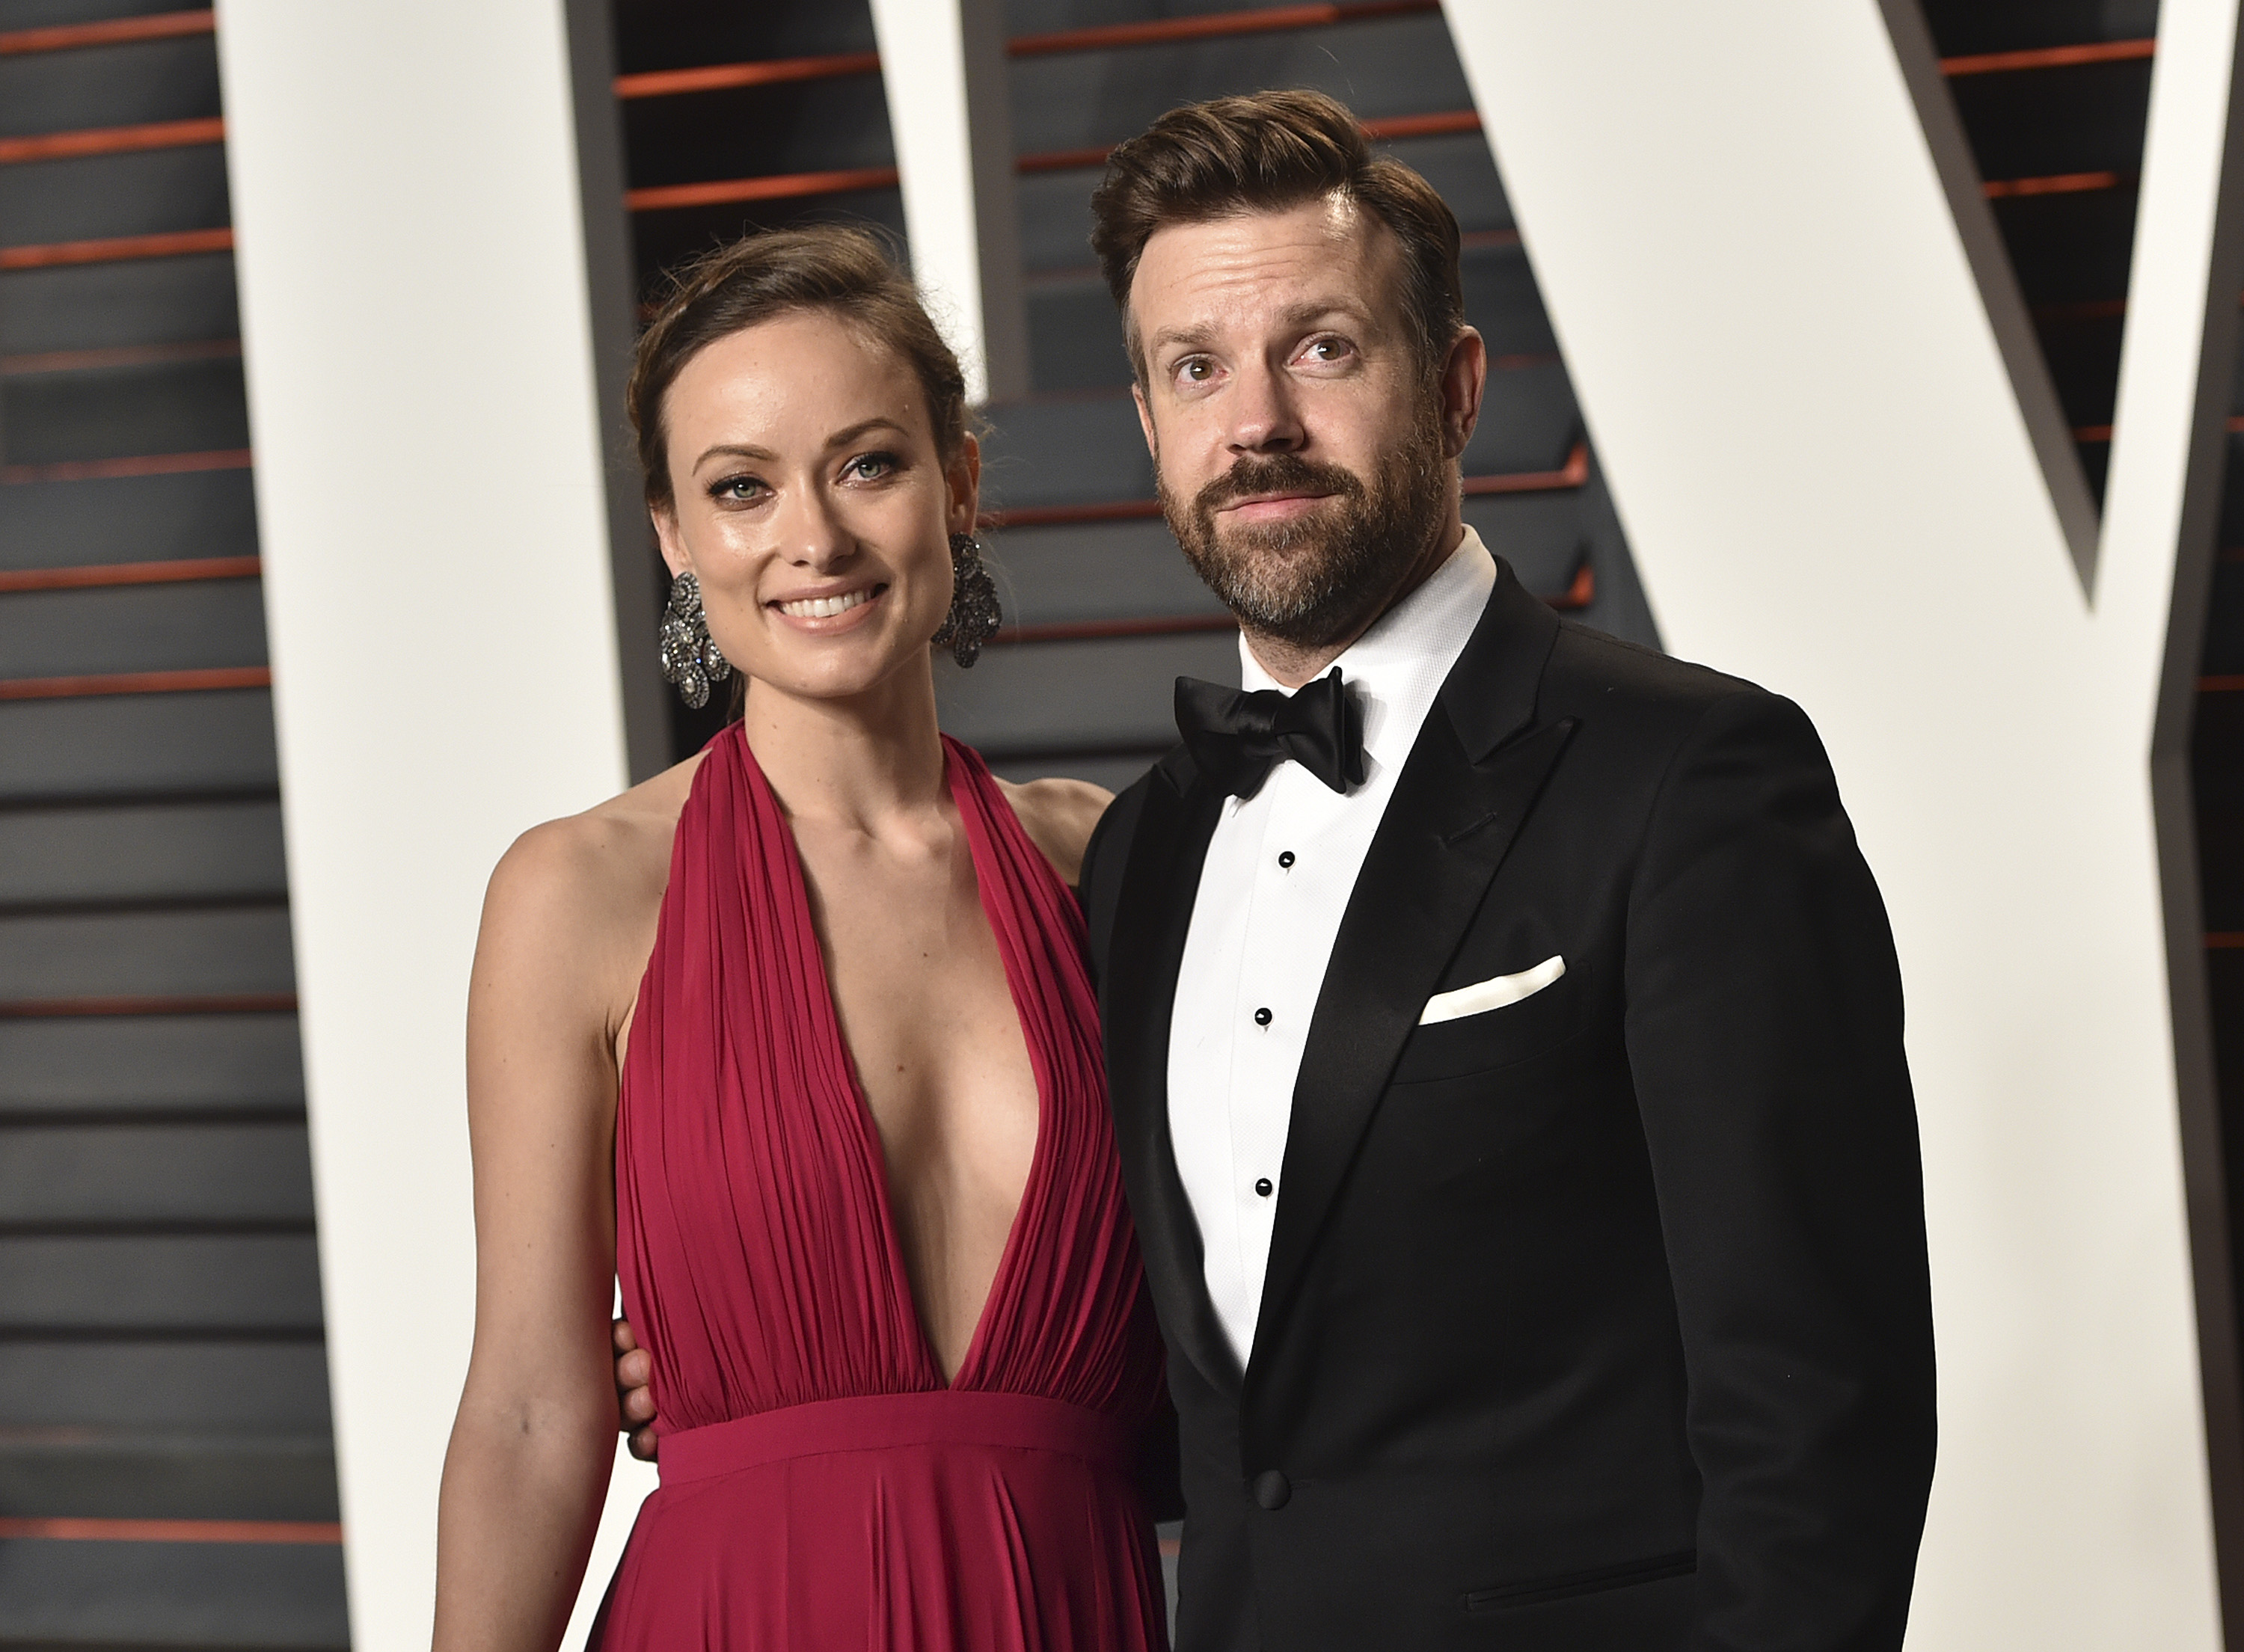 Actress Olivia Wilde (L) and actor Jason Sudeikis arrive at the 2016 Vanity Fair Oscar Party Hosted By Graydon Carter at Wallis Annenberg Center for the Performing Arts on February 28, 2016 in Beverly Hills, California.